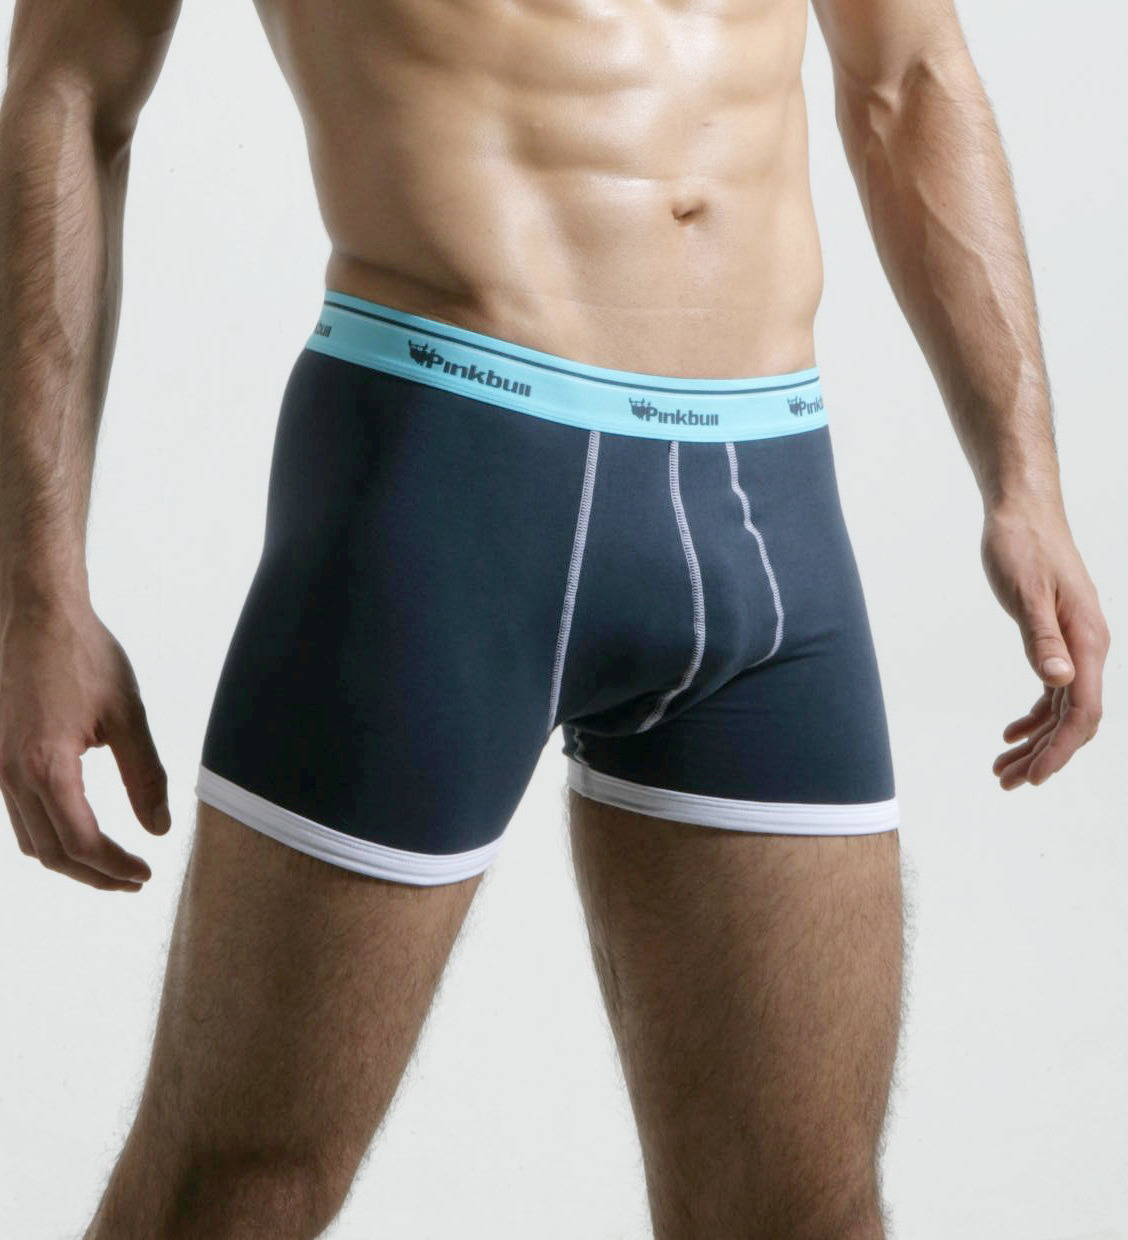 Overstock uses cookies to ensure you get the best experience on our site. If you continue on our site, you consent to the use of such cookies. Learn more. OK Underwear. Clothing & Shoes / Men's Hunter Men's Boxer Brief Underwear (3 Pair Pack) 15 Reviews. More Options. Quick View.